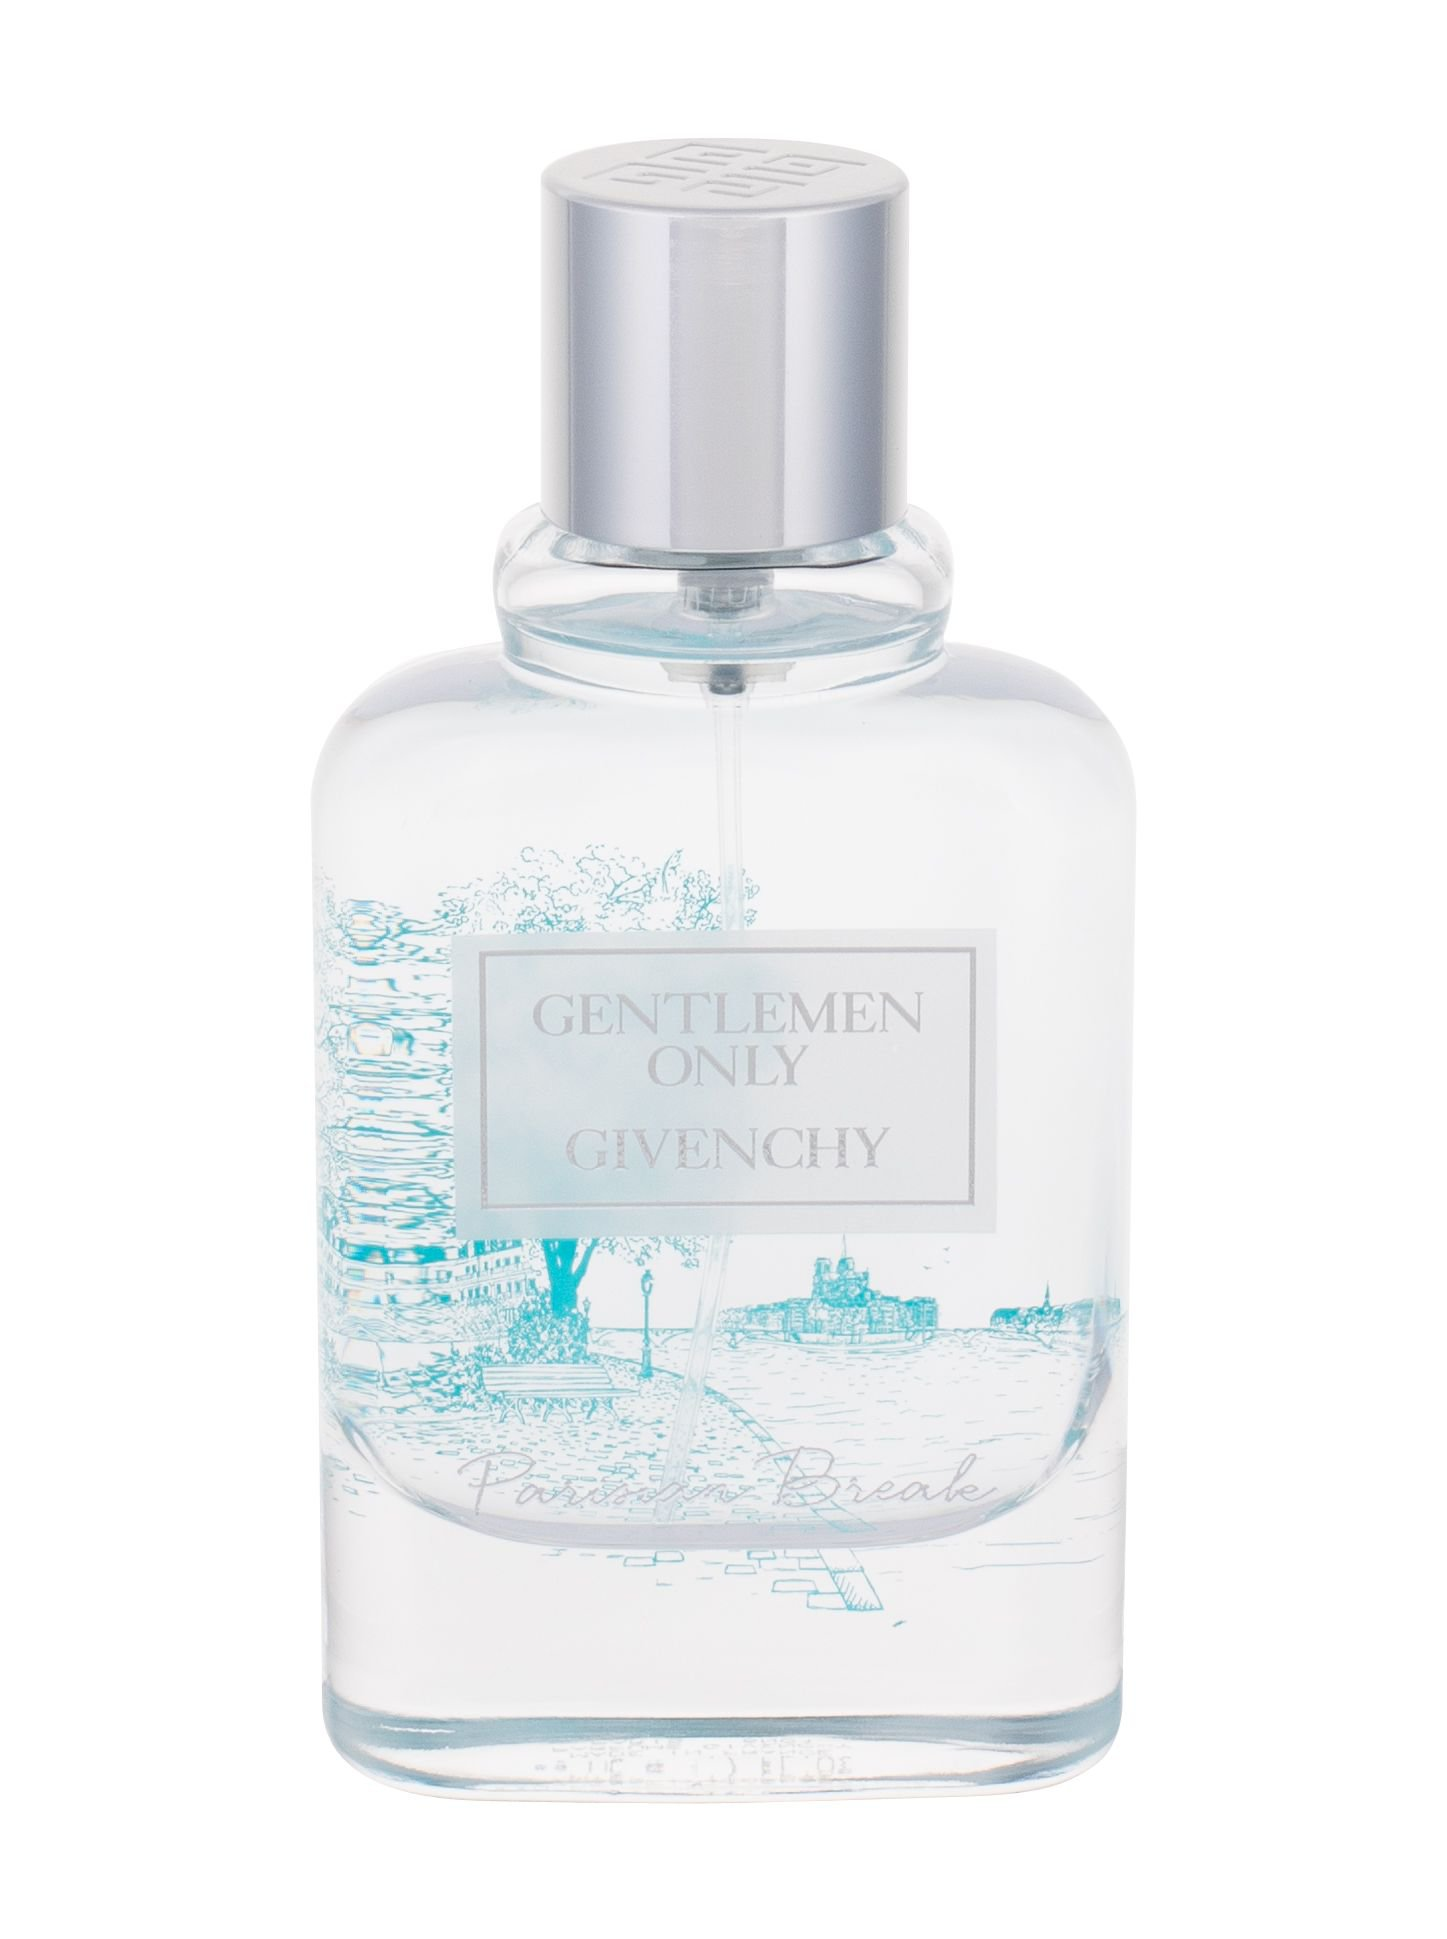 Givenchy Gentlemen Only Parisian Break, Toaletní voda 50ml